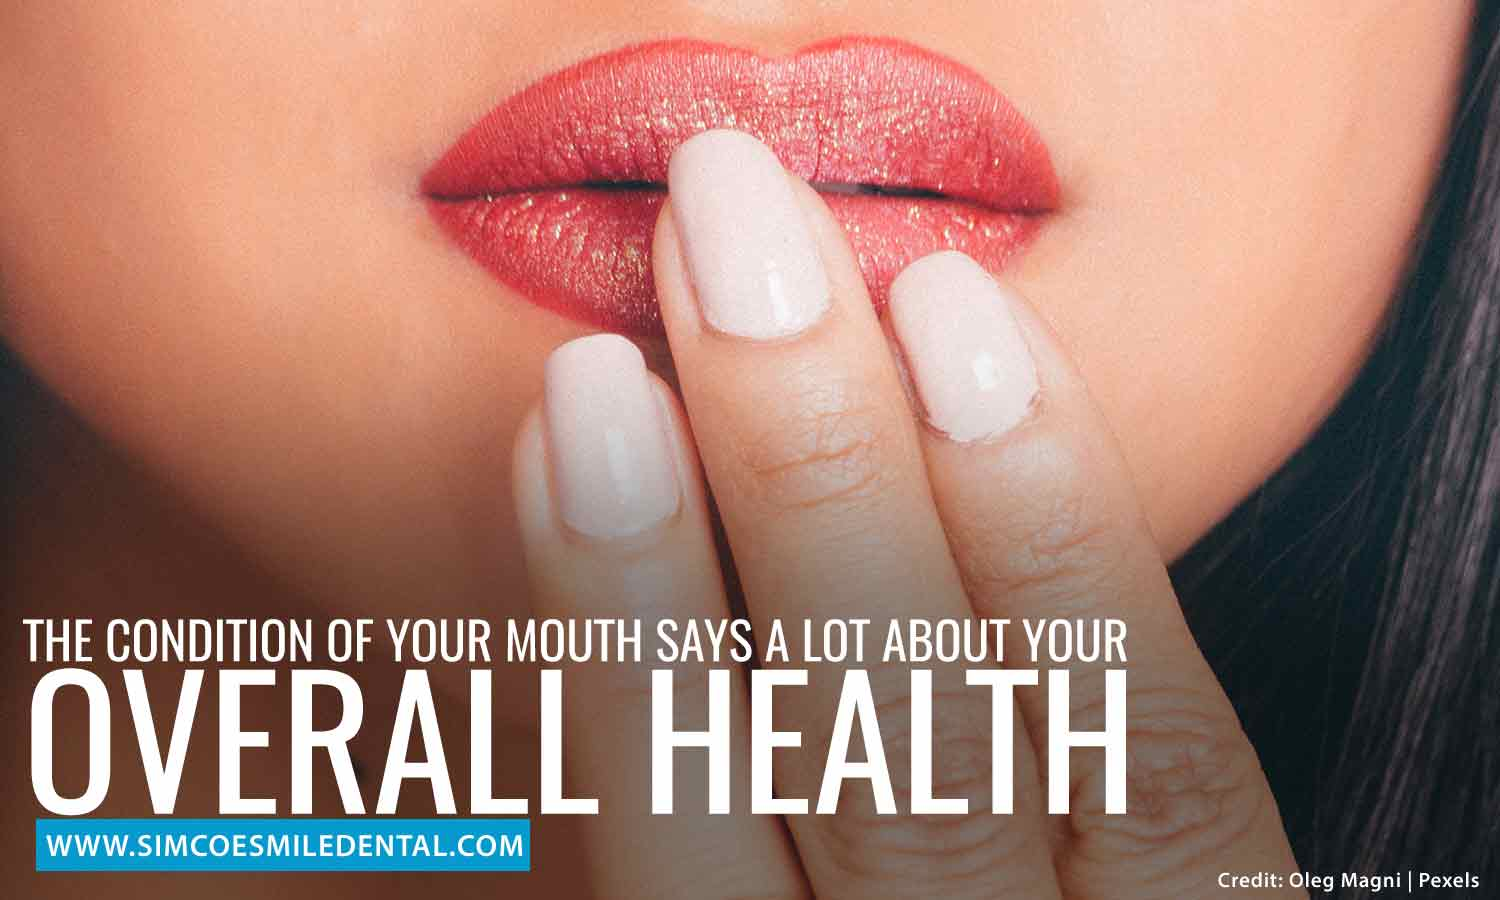 The-condition-of-your-mouth-says-a-lot-about-your-overall-health How Poor Oral Hygiene Affects Overall Health